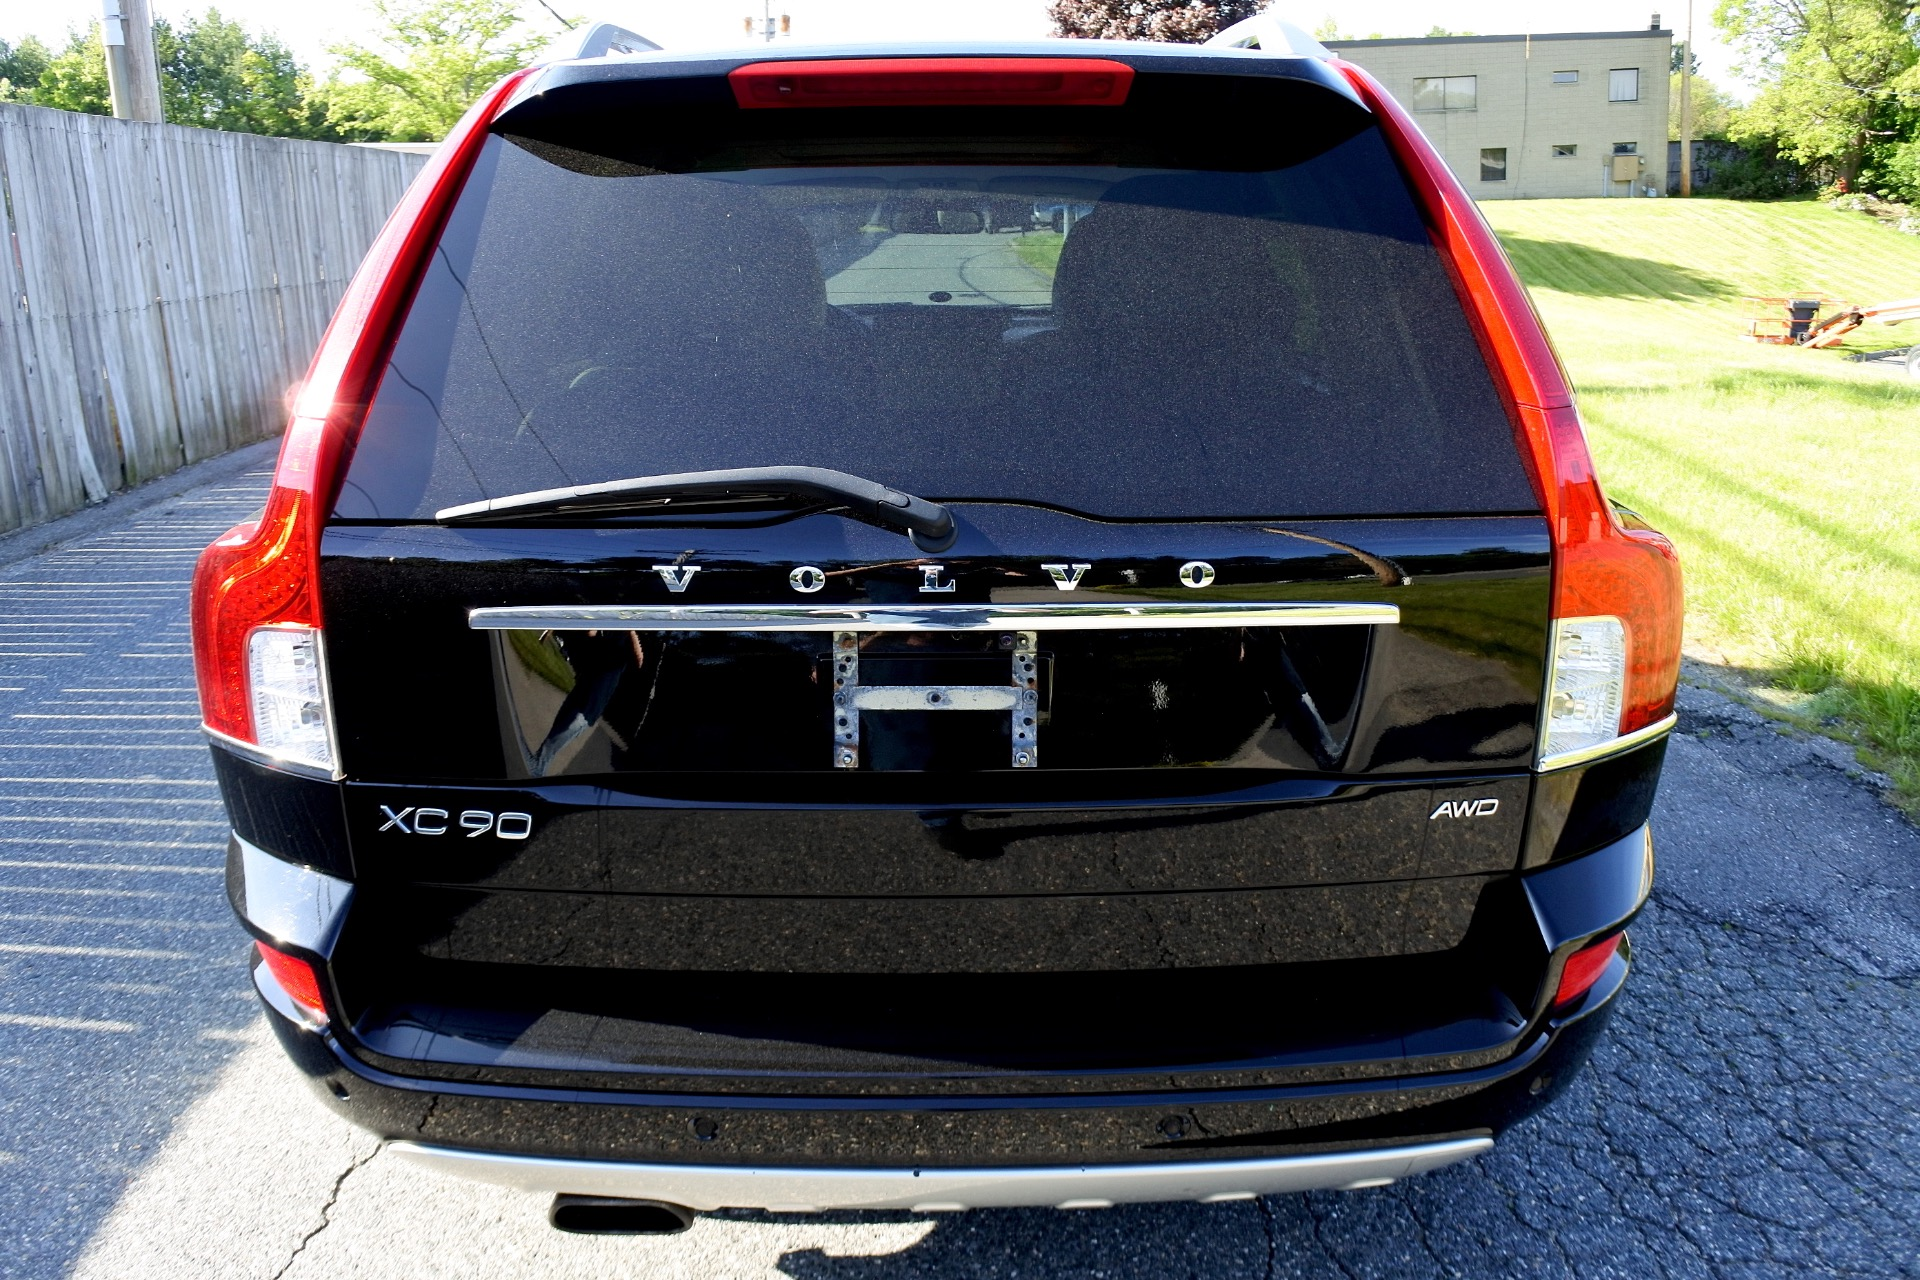 Used 2014 Volvo Xc90 AWD 4dr Used 2014 Volvo Xc90 AWD 4dr for sale  at Metro West Motorcars LLC in Shrewsbury MA 4